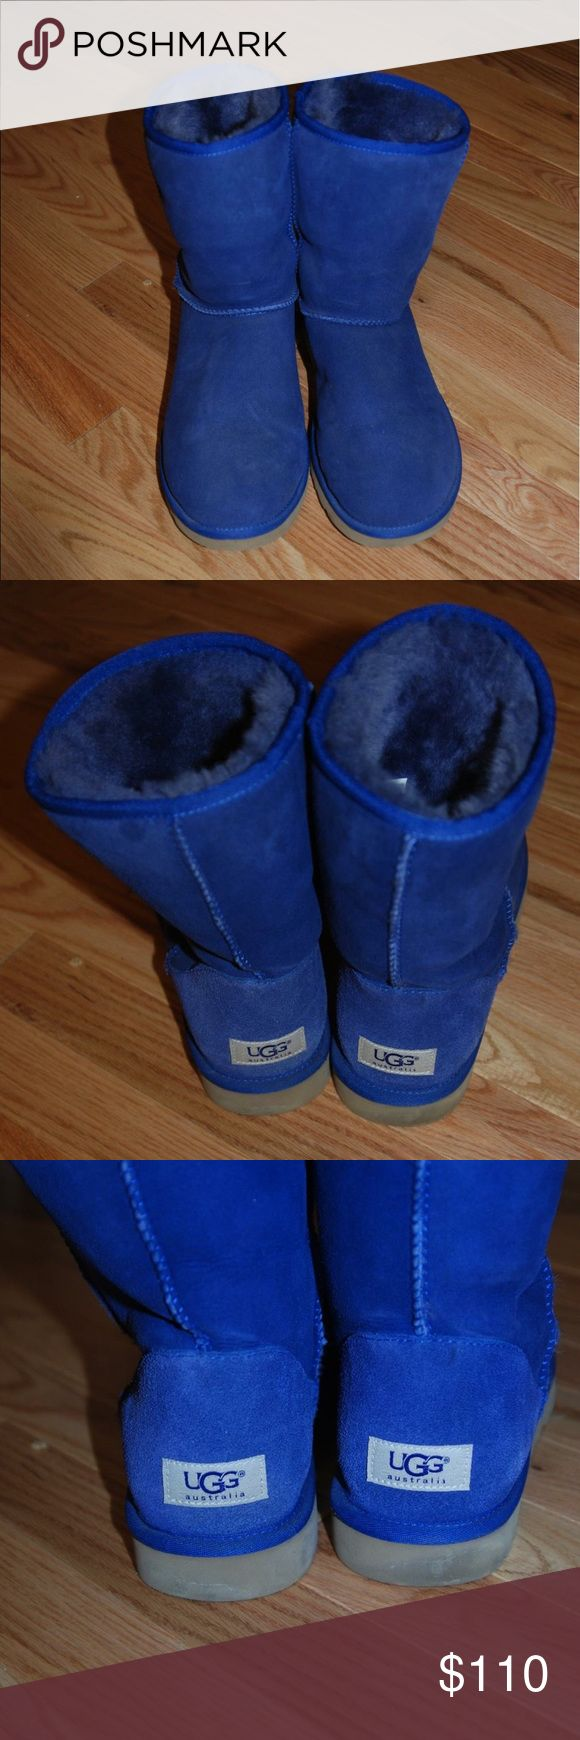 Classic short Uggs Classic short Ugg boots in a beautiful vibrant blue color! Purchased directly from the Ugg website a few years ago and only worn a few times! Very mild wear! Great condition! Women's size 9. UGG Shoes Winter & Rain Boots